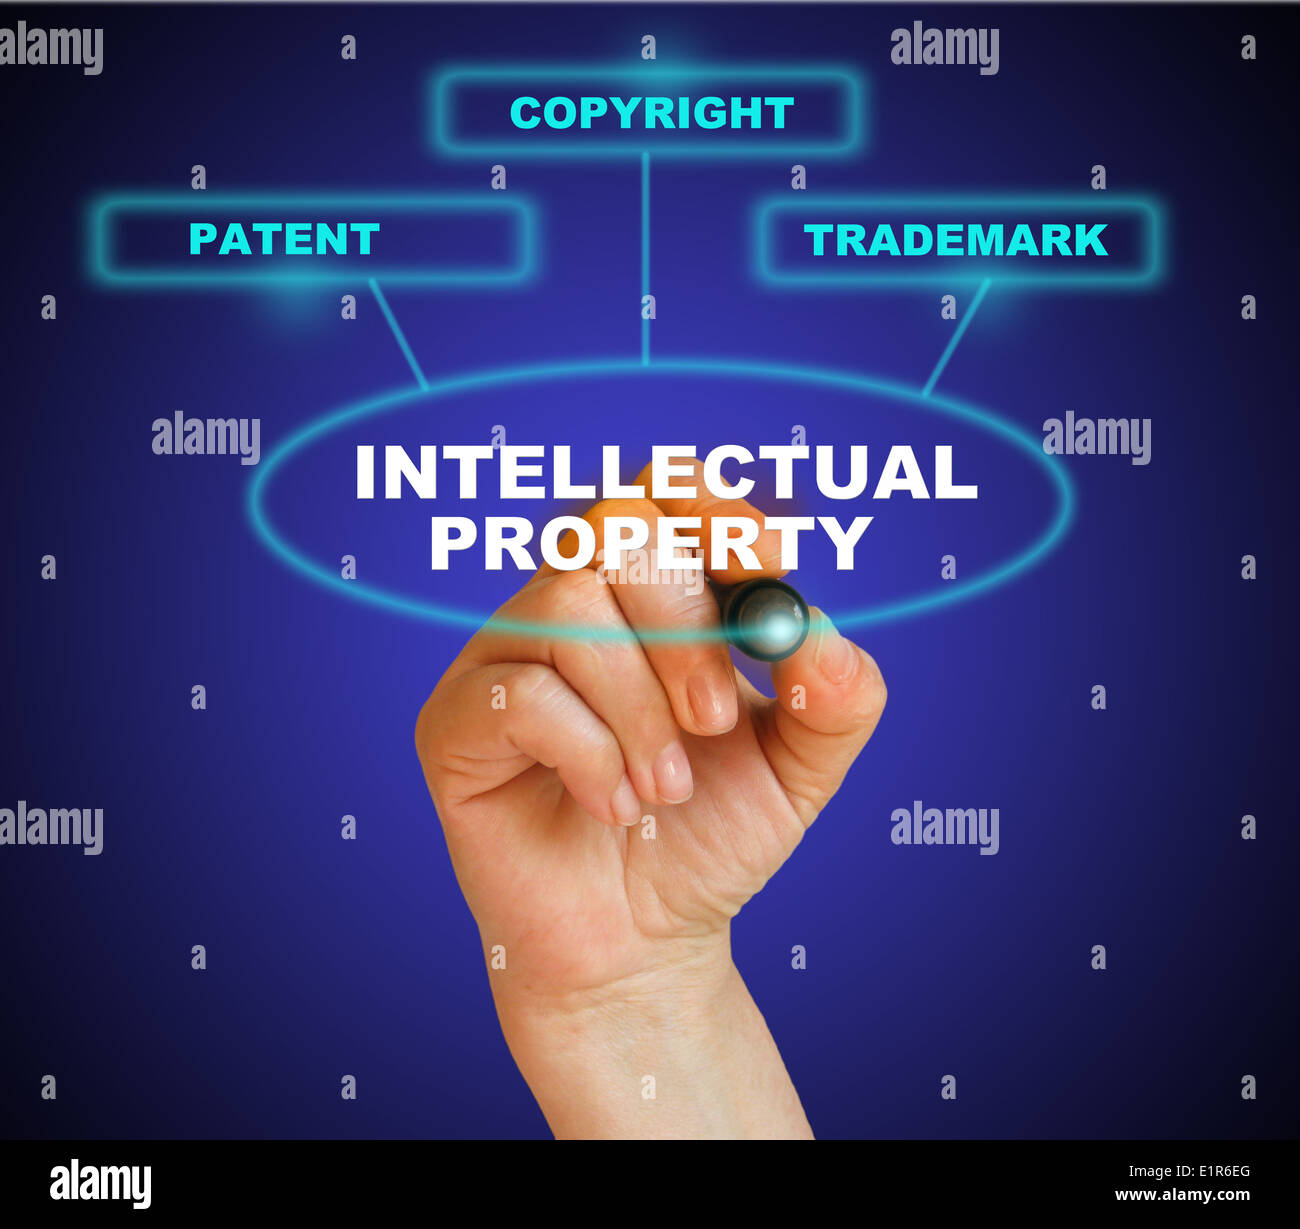 Intellectual Property Protection: Patent Formula Stock Photos & Patent Formula Stock Images